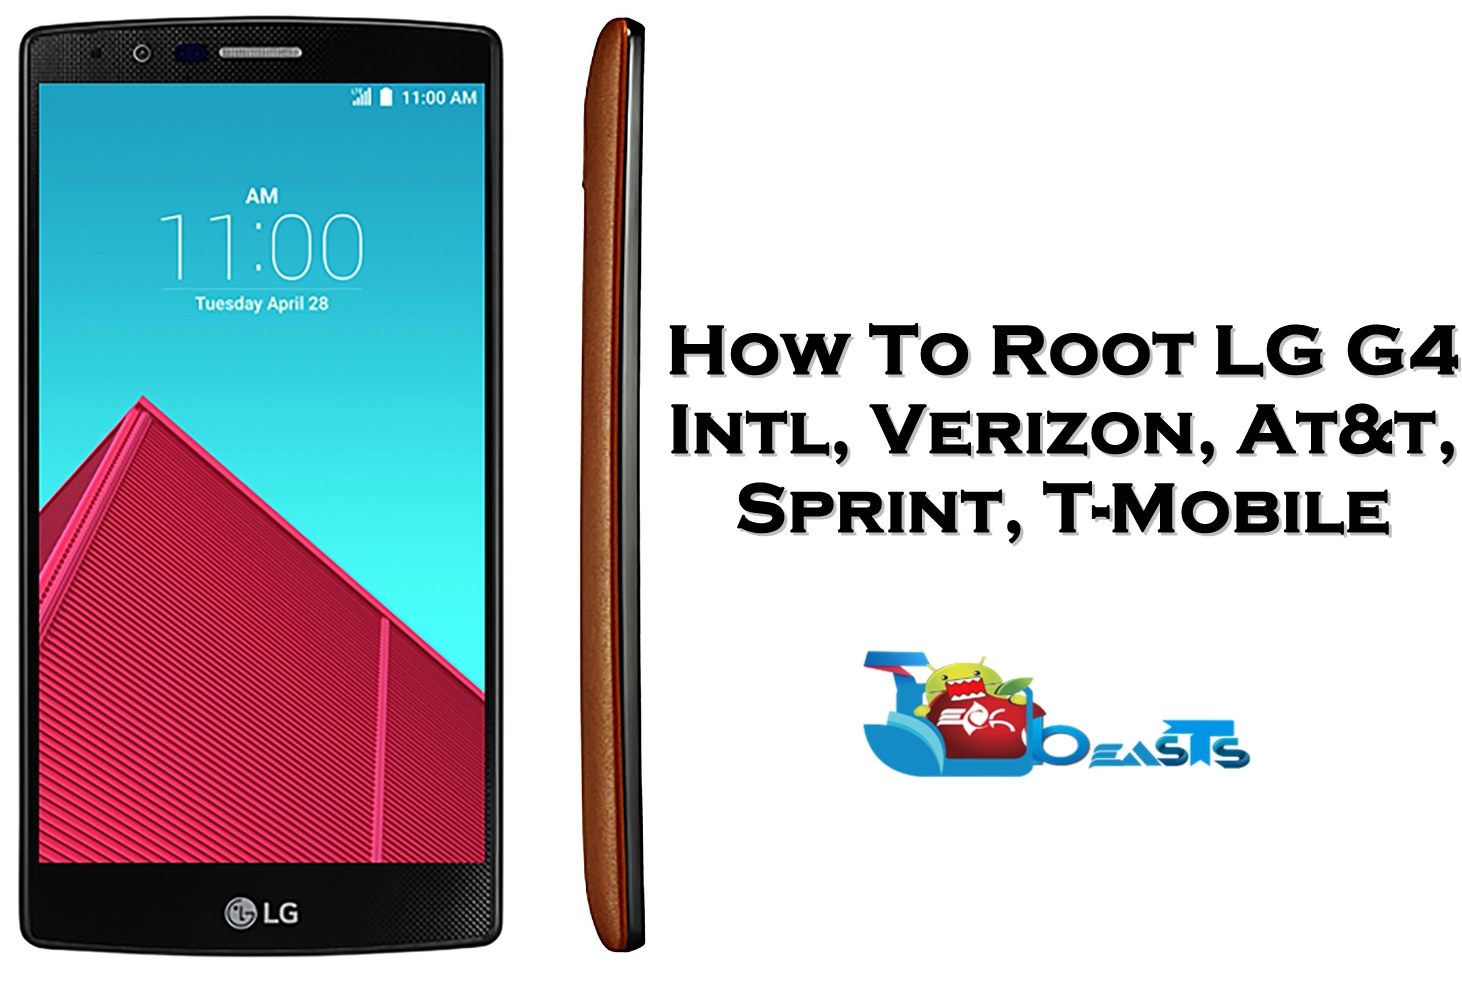 How To Root LG G4 [International, Verizon, At&t, T-Mobile, Sprint]